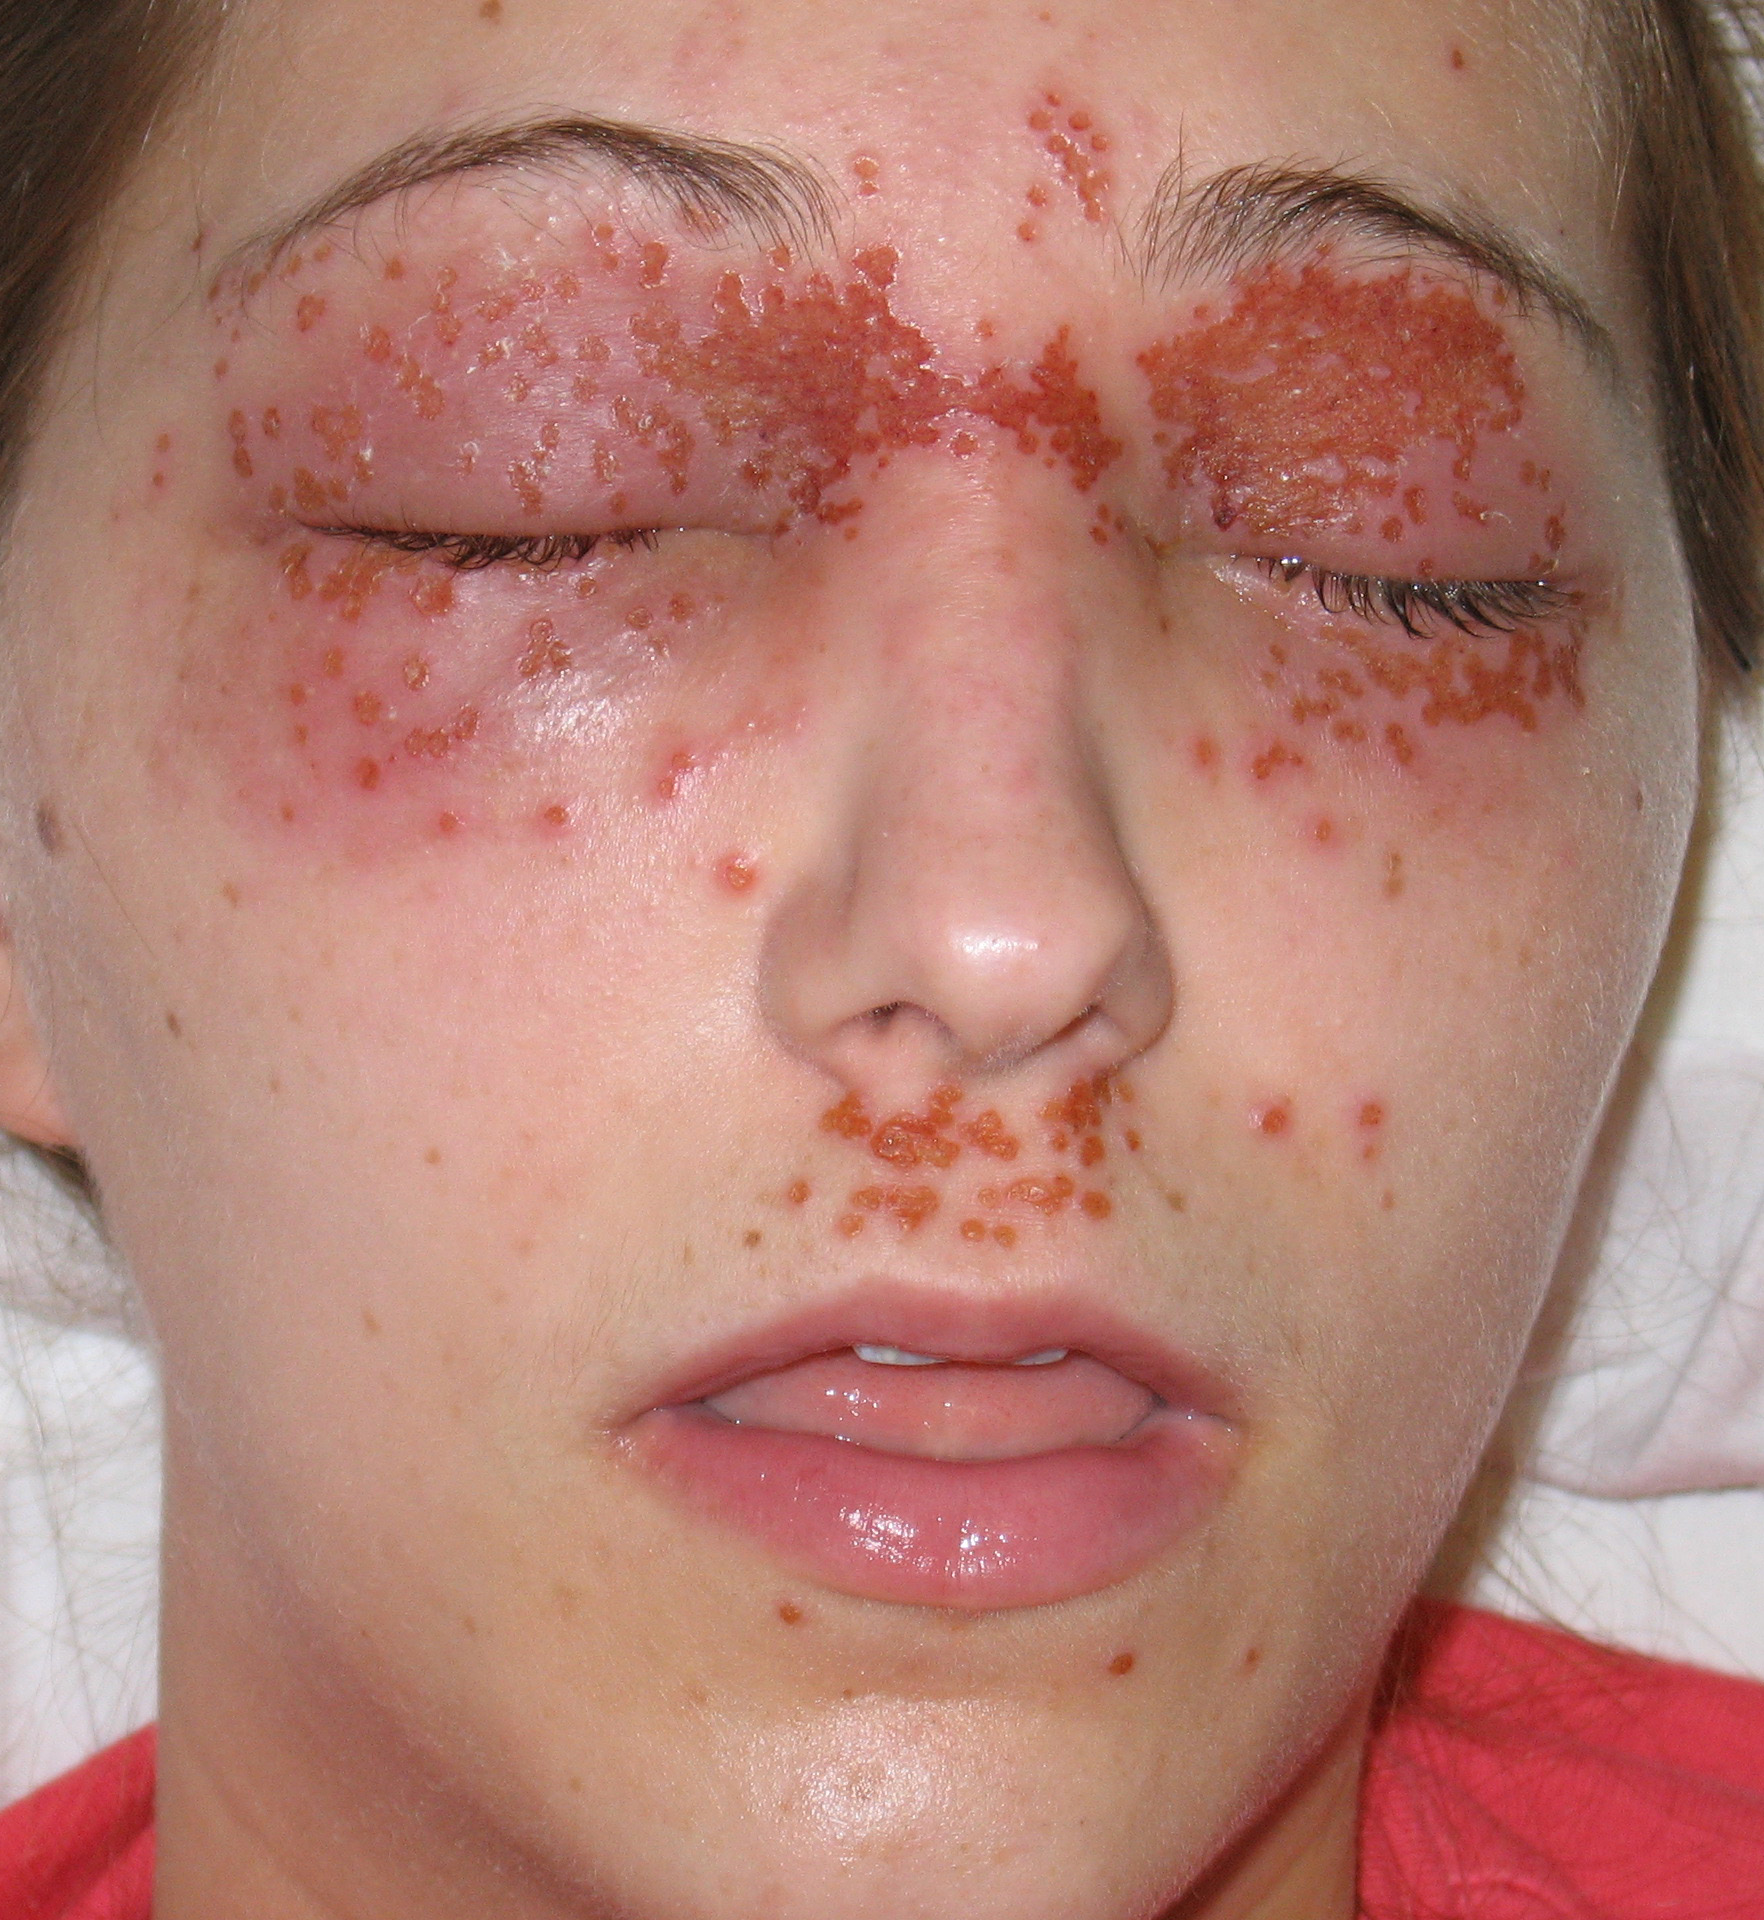 Herpes 2 in mouth treatment adults